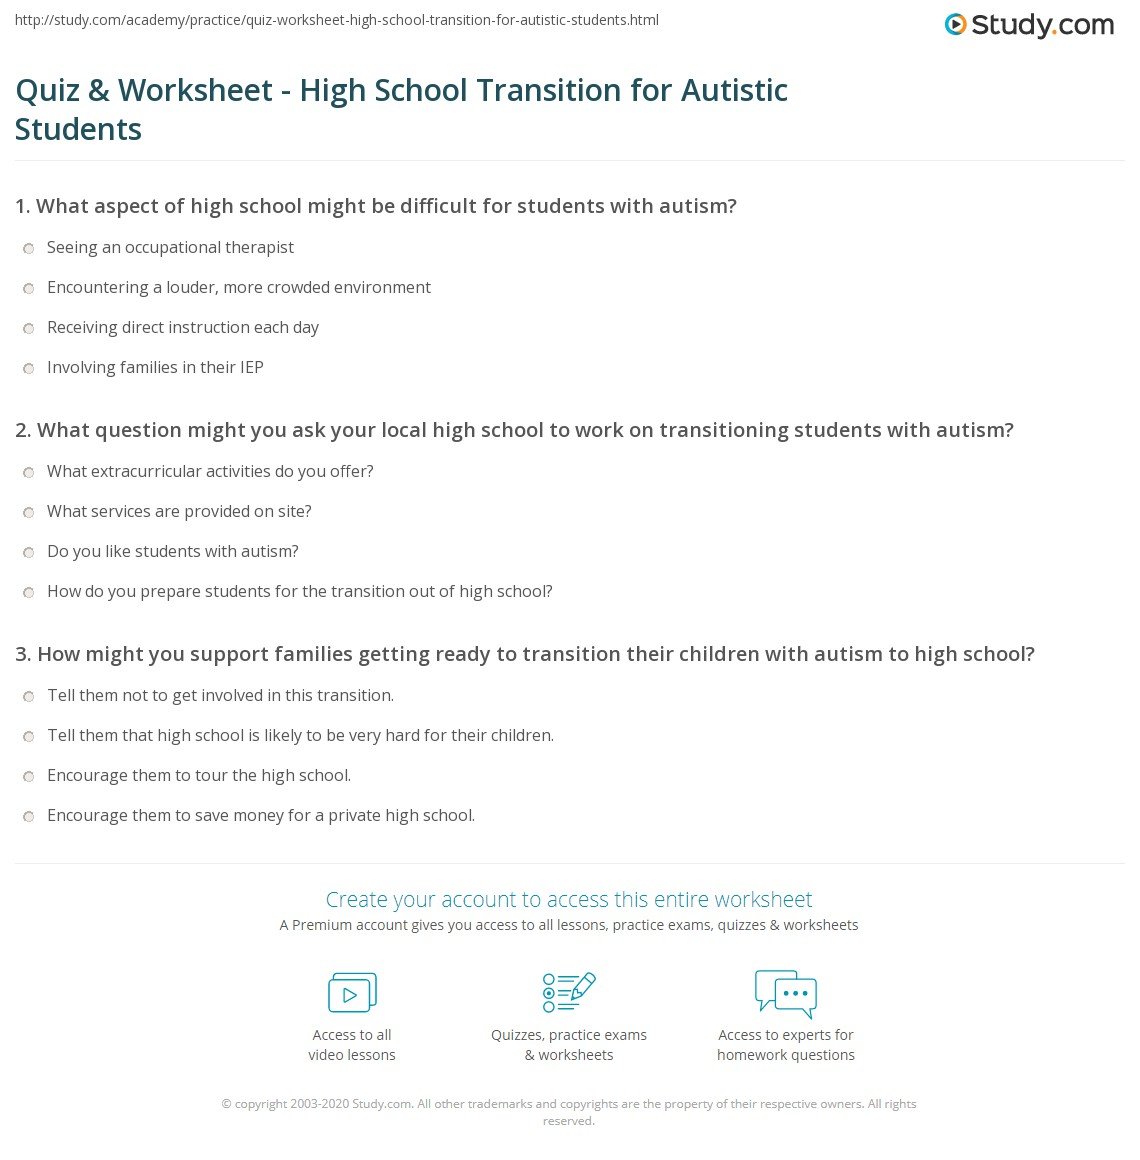 Quiz & Worksheet - High School Transition for Autistic